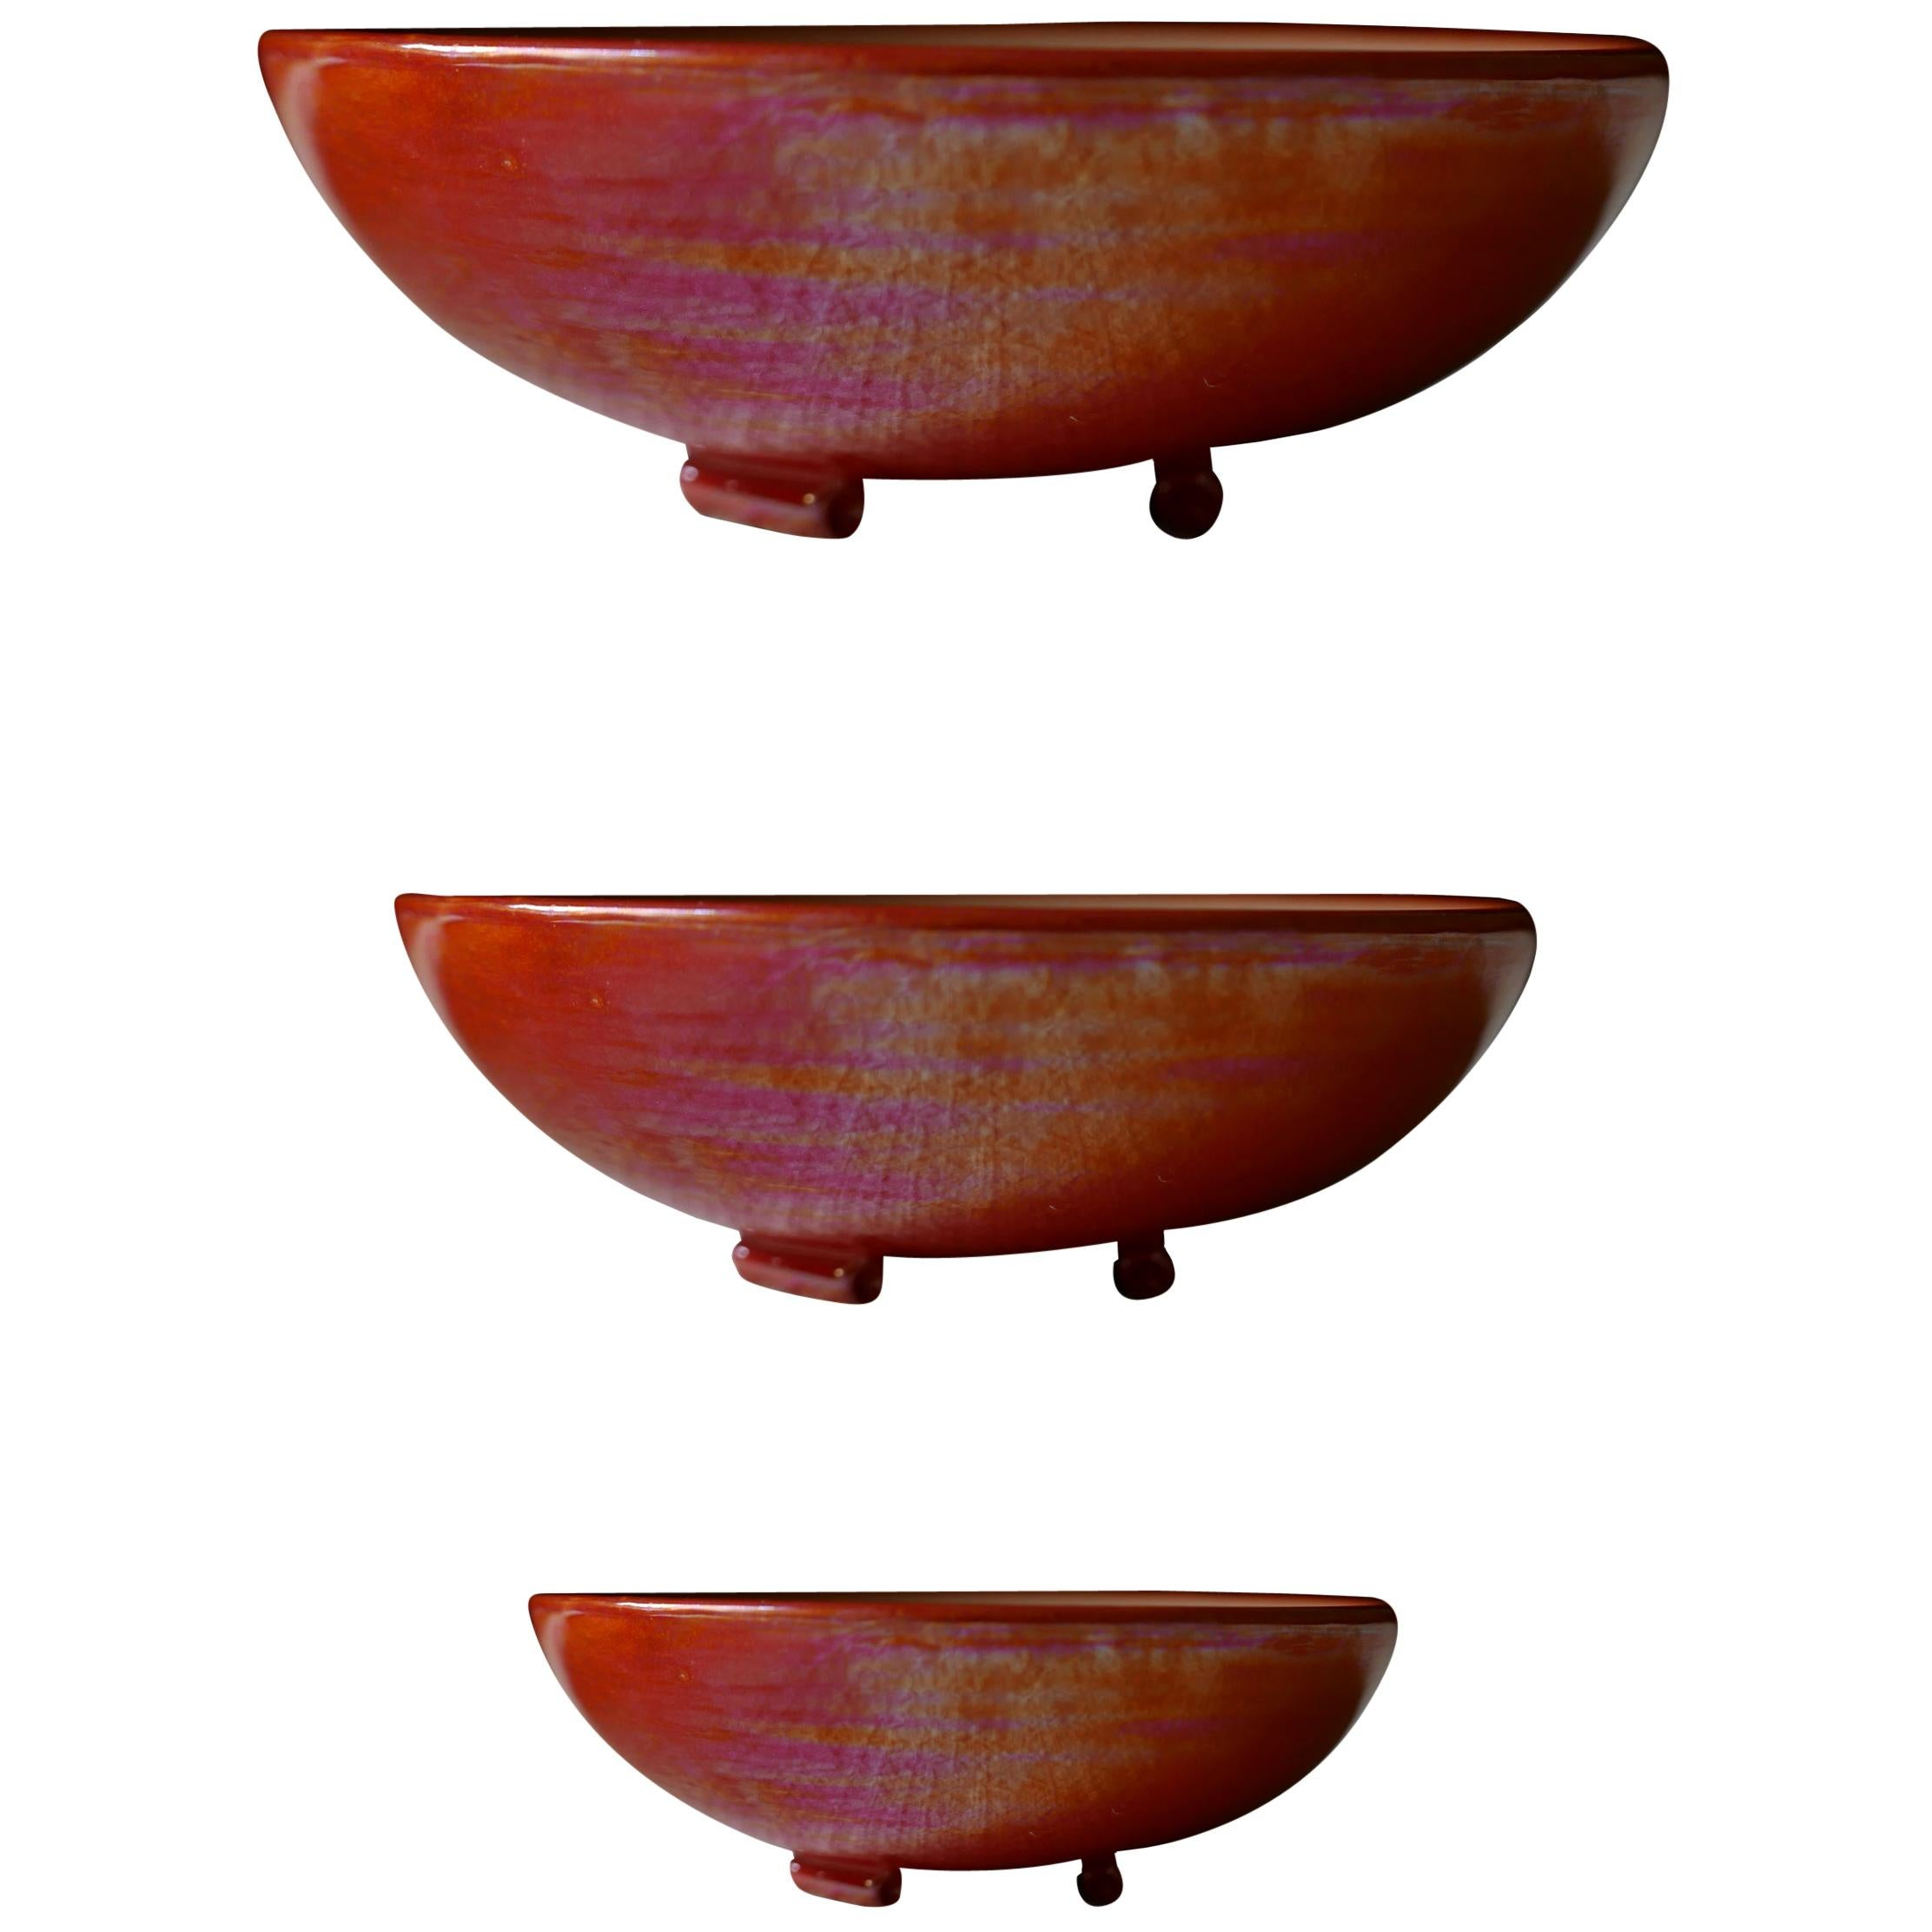 21st Century, Concentric Ceramic Bowls. Made in Italy Hanmade